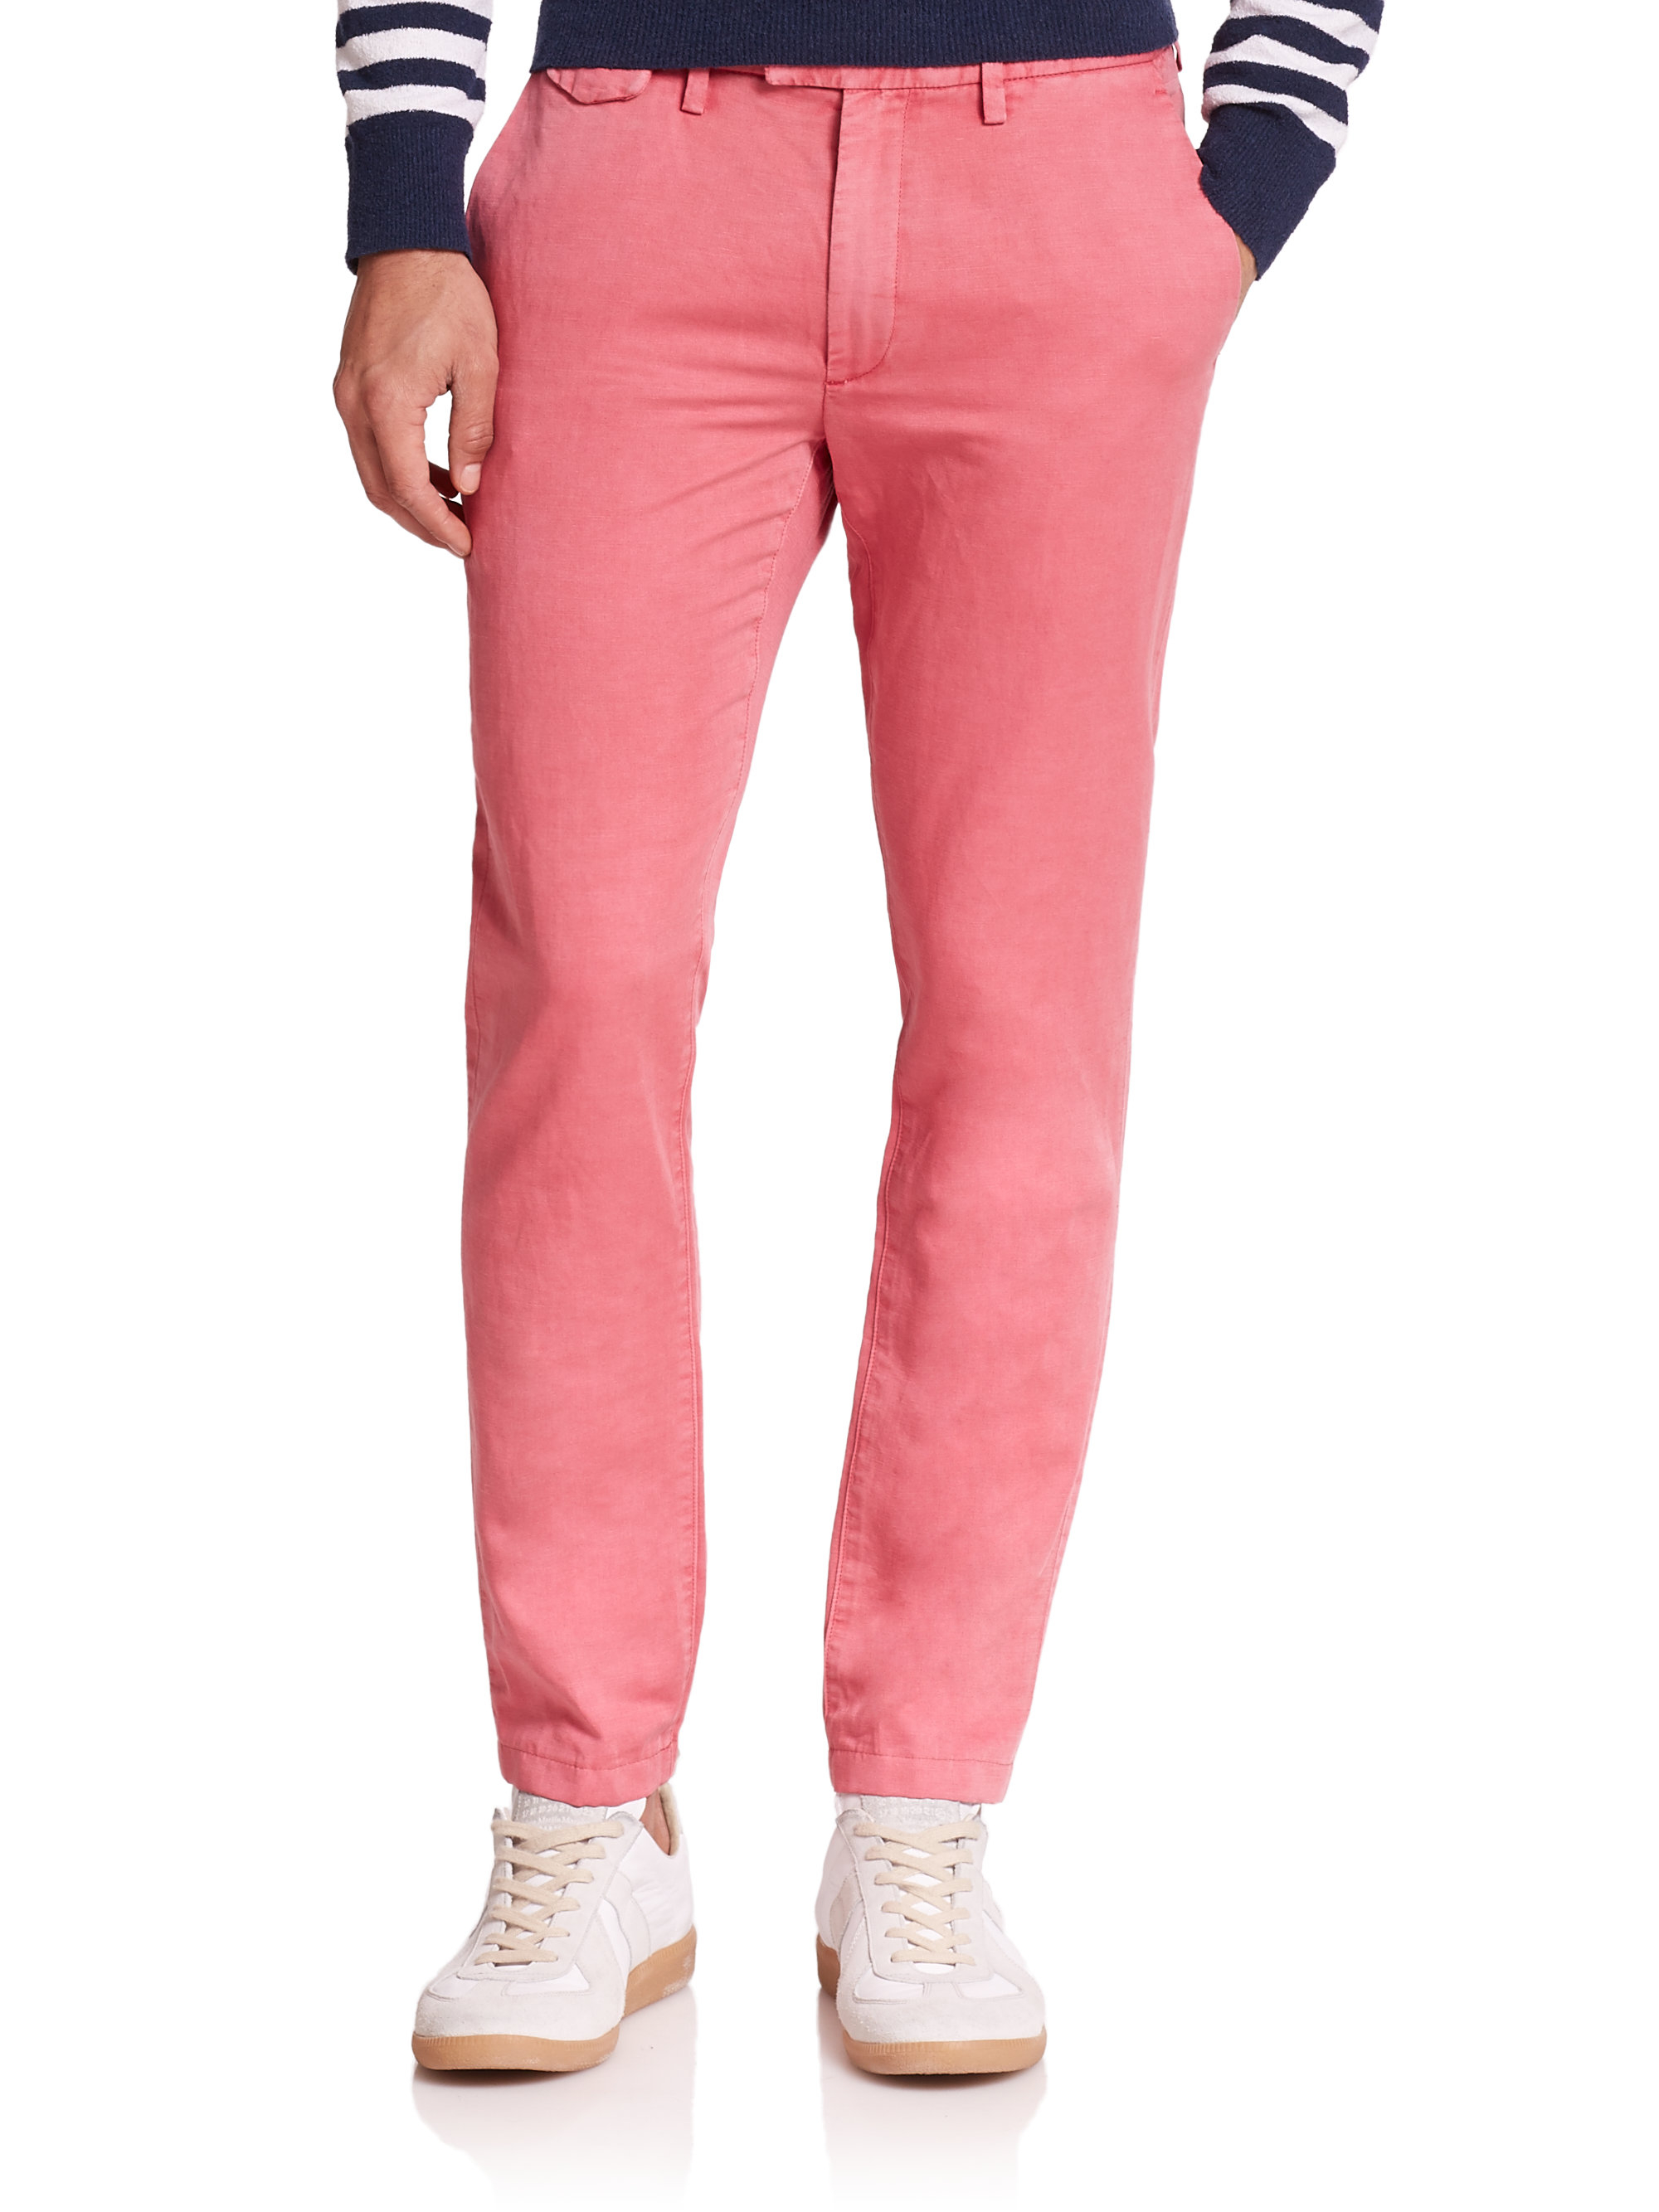 Attractive and cool, men's pink pants are a nice solution to impress others. The fit and appearance of these men's pink pants are acknowledged by men. Search for the right material and clothing size from all the listings to get just what you want.